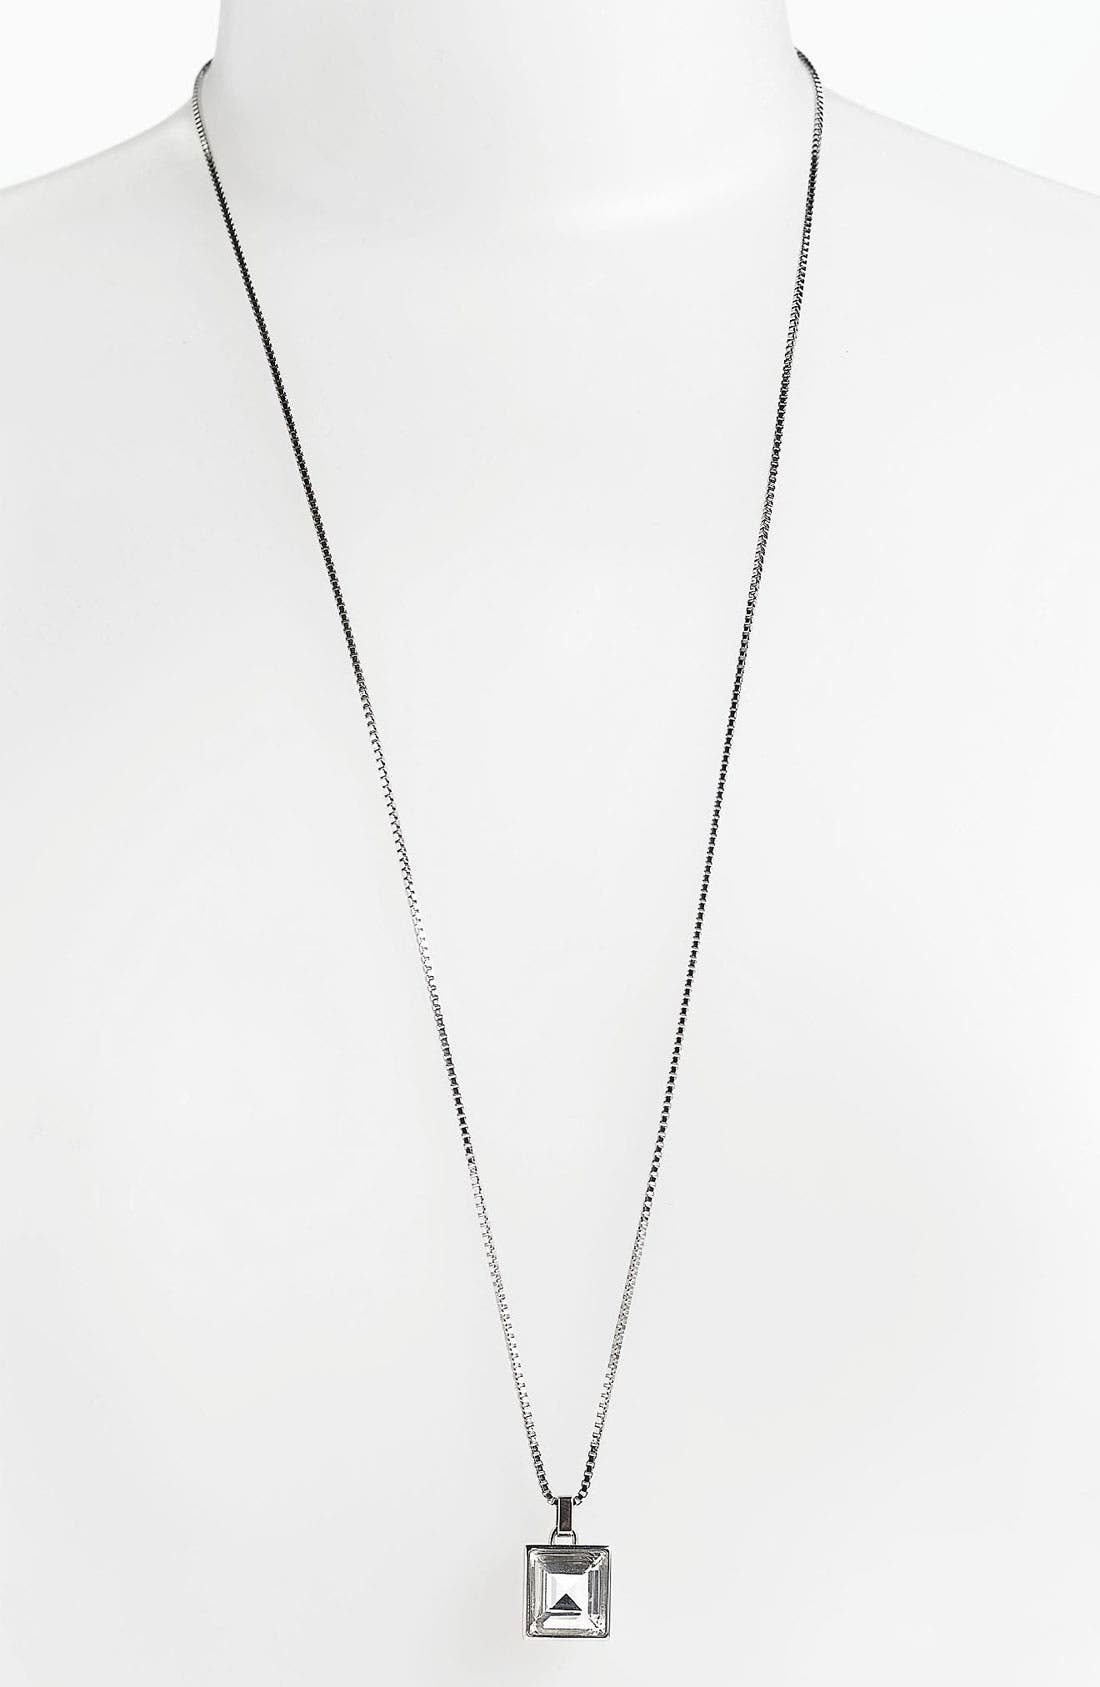 Alternate Image 1 Selected - Michael Kors 'Cocktail Party' Pendant Necklace